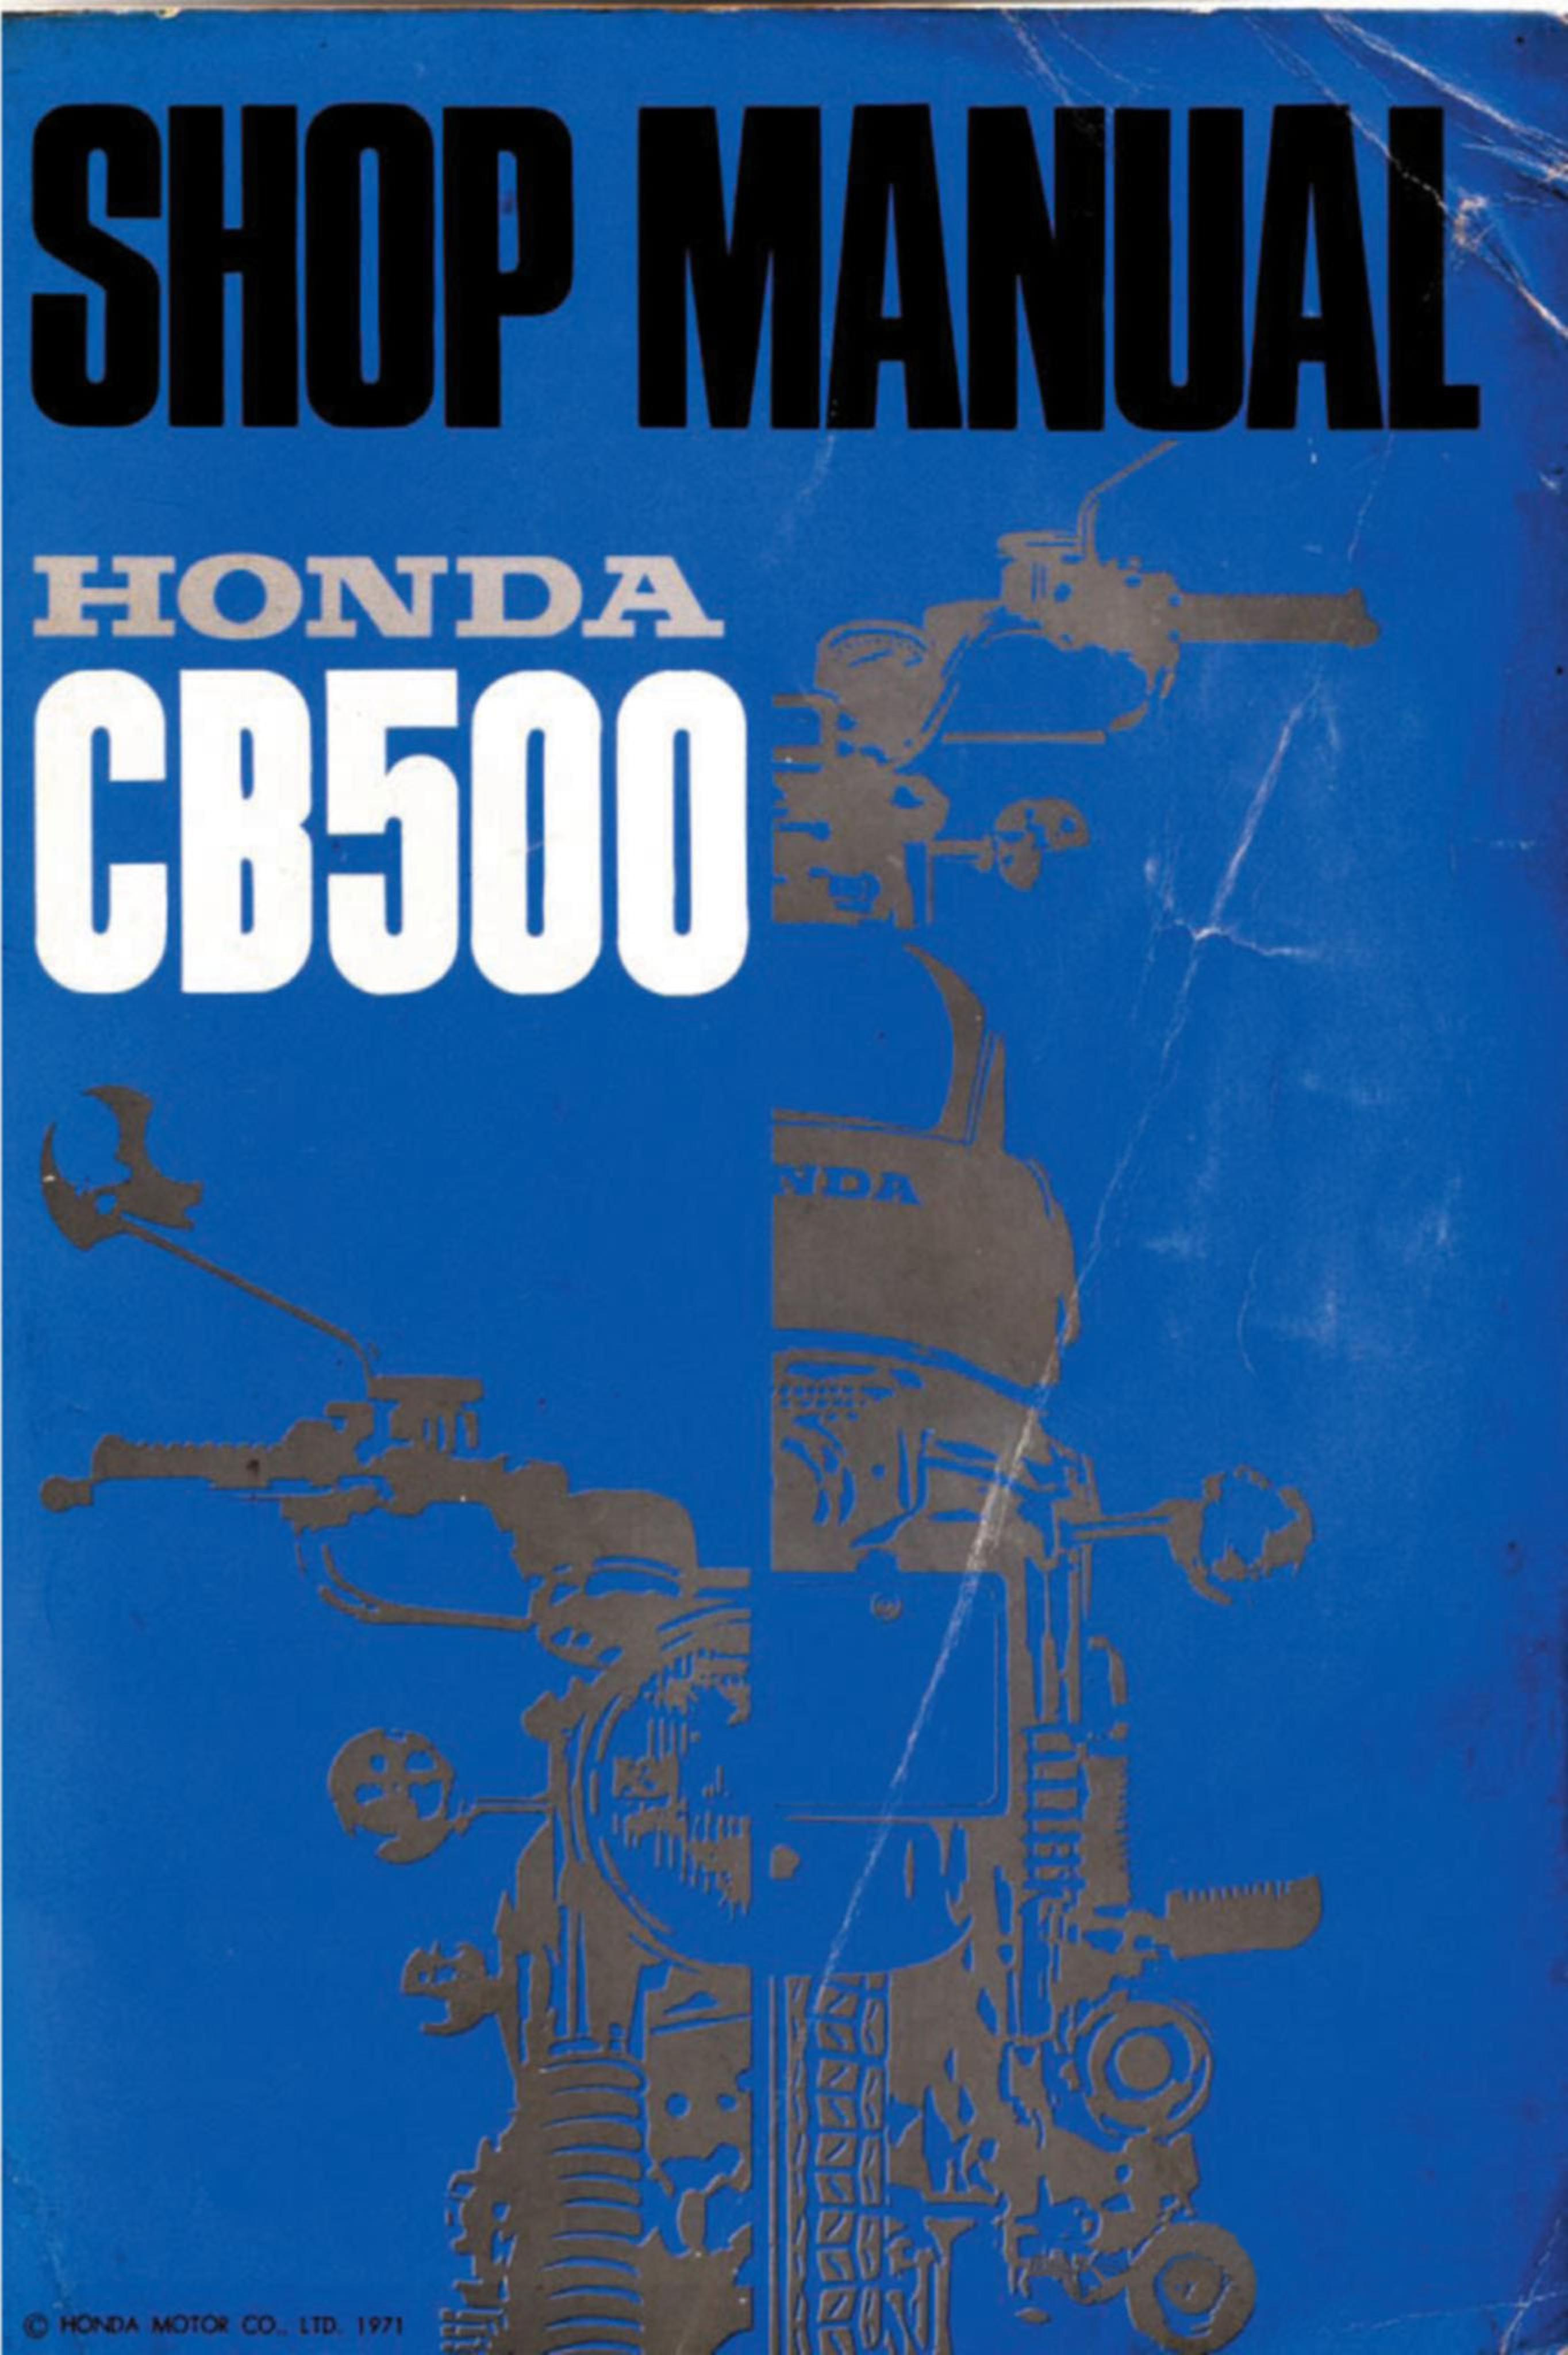 workshopmanual cb500 1971 11112018 2009